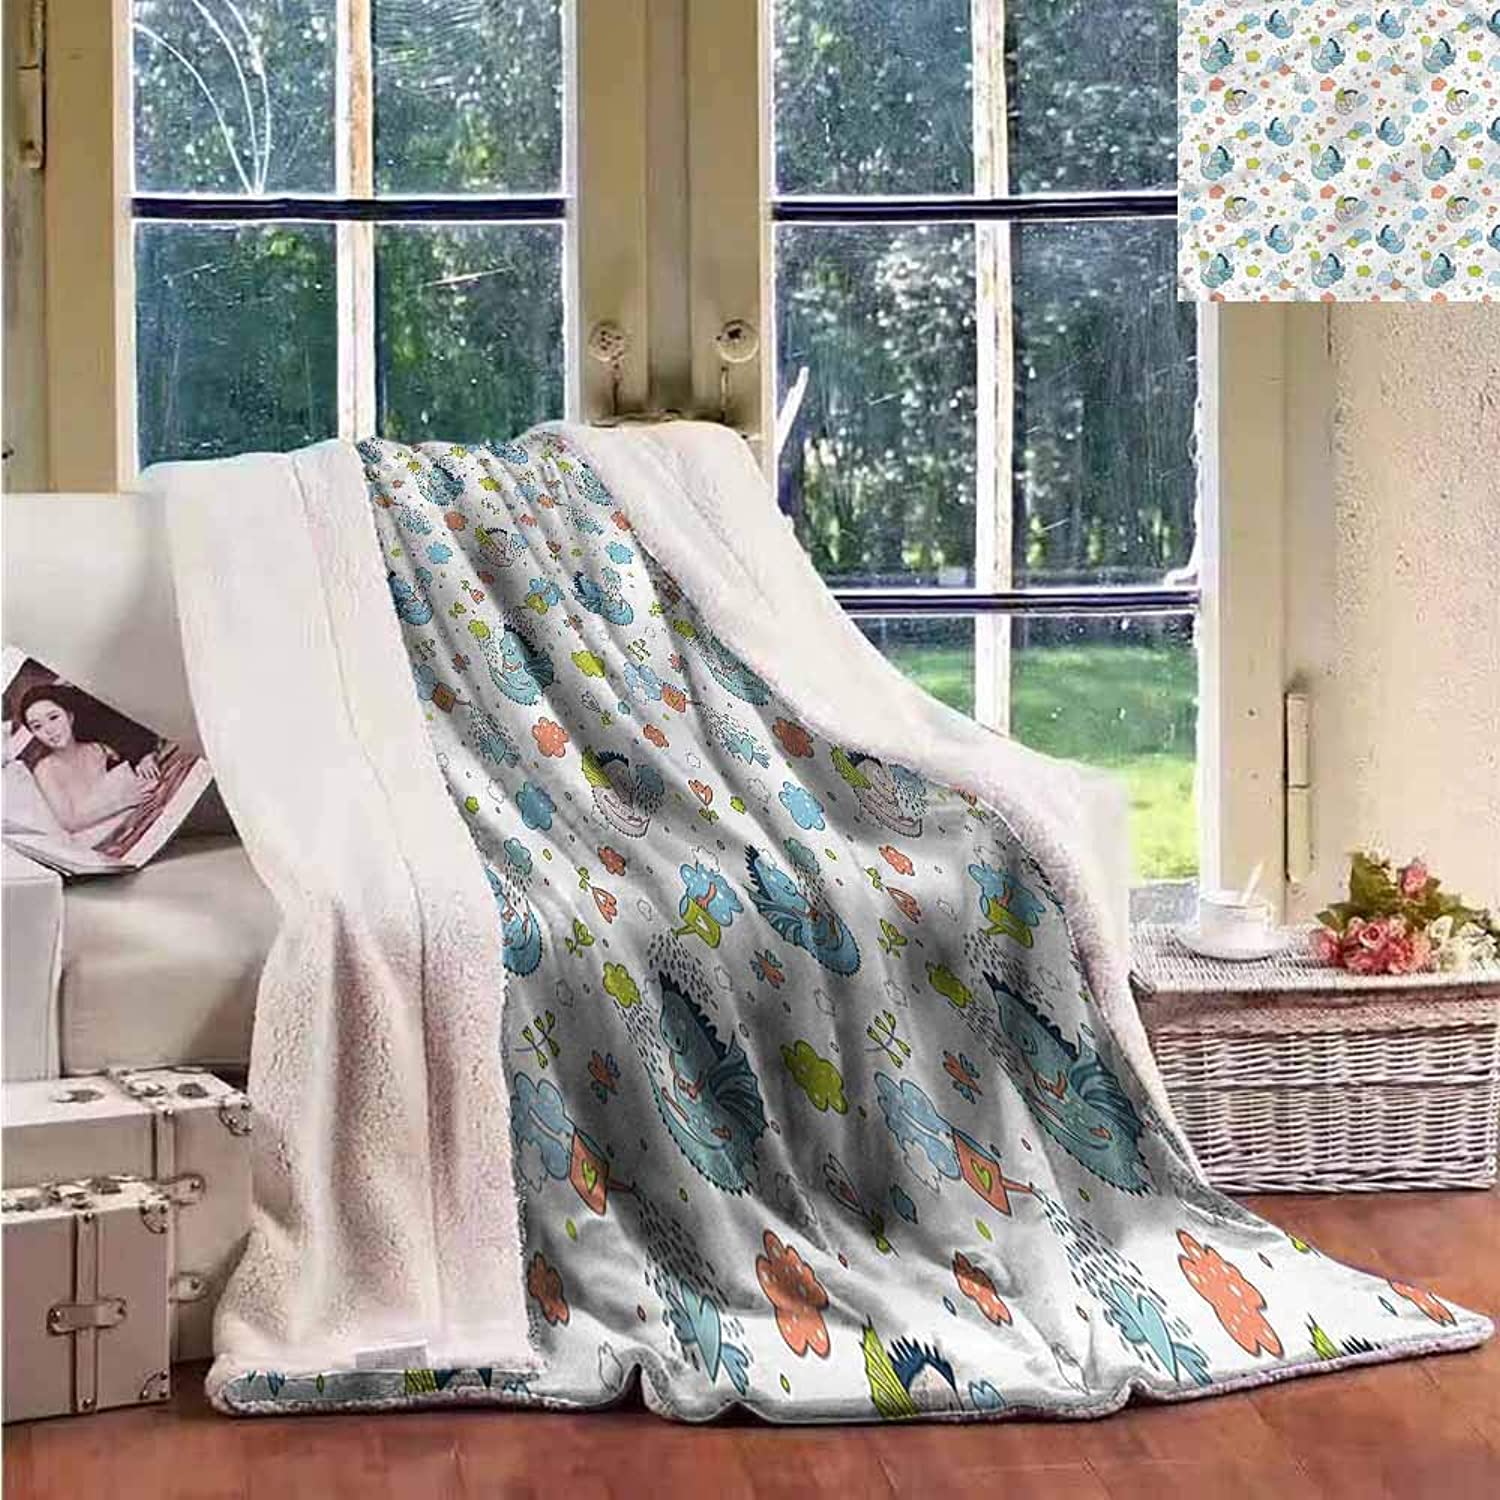 Sunnyhome Flannel Double Blanket Boys Room Hand Drawn Kid Dragons Throw Blanket Picnic Blanket W59x31L